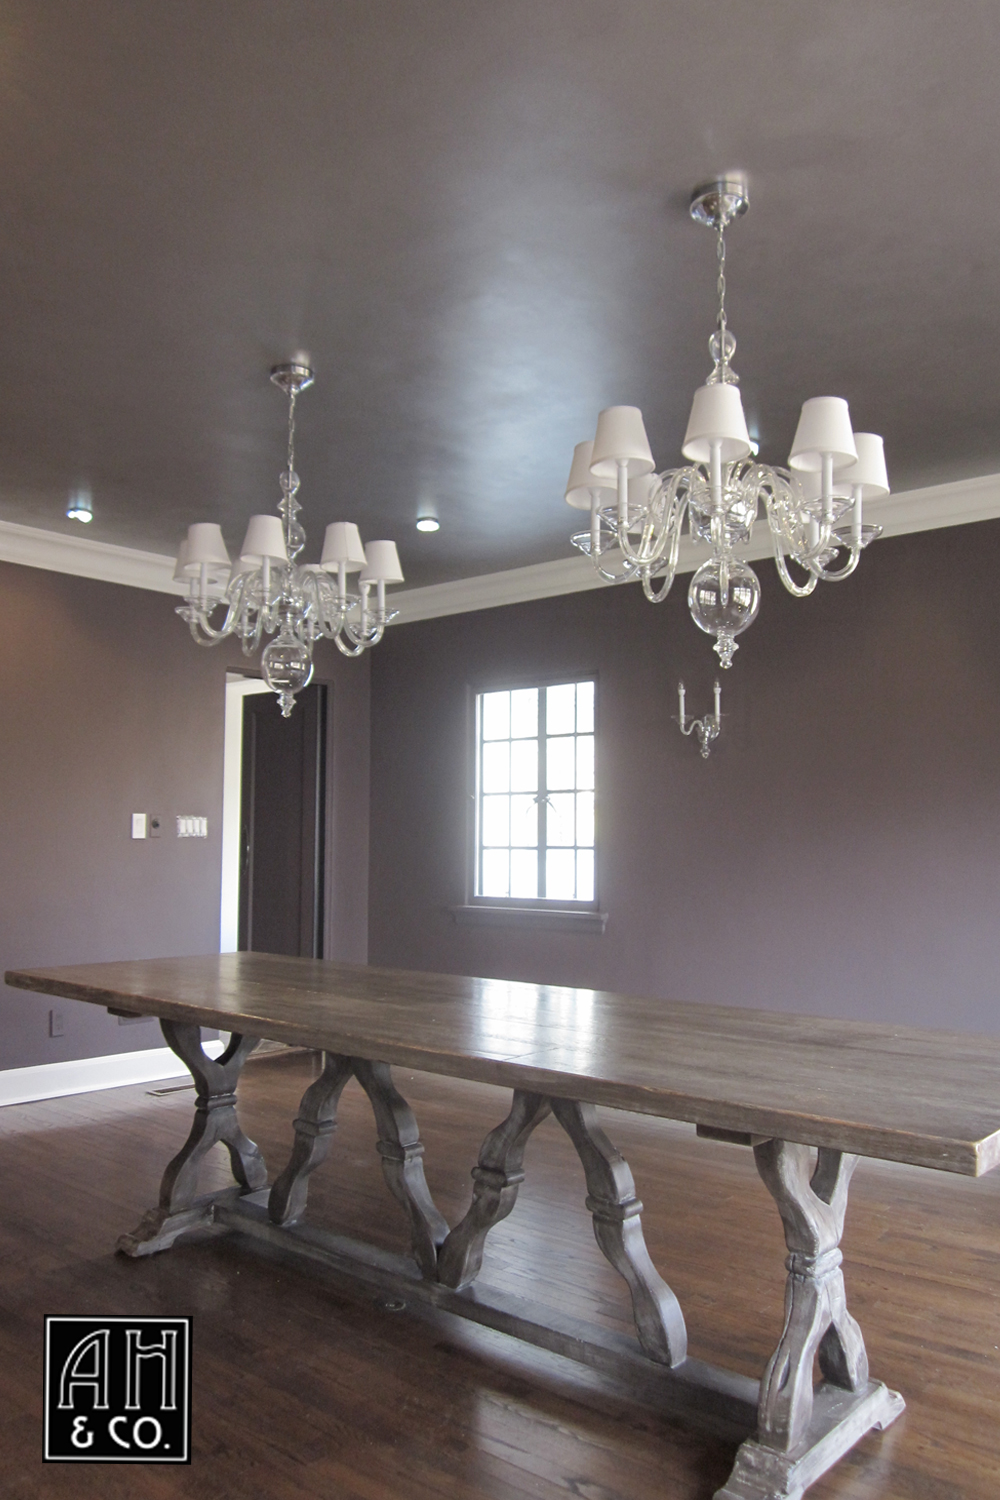 ceiling finishes — ah & co: decorative artisans